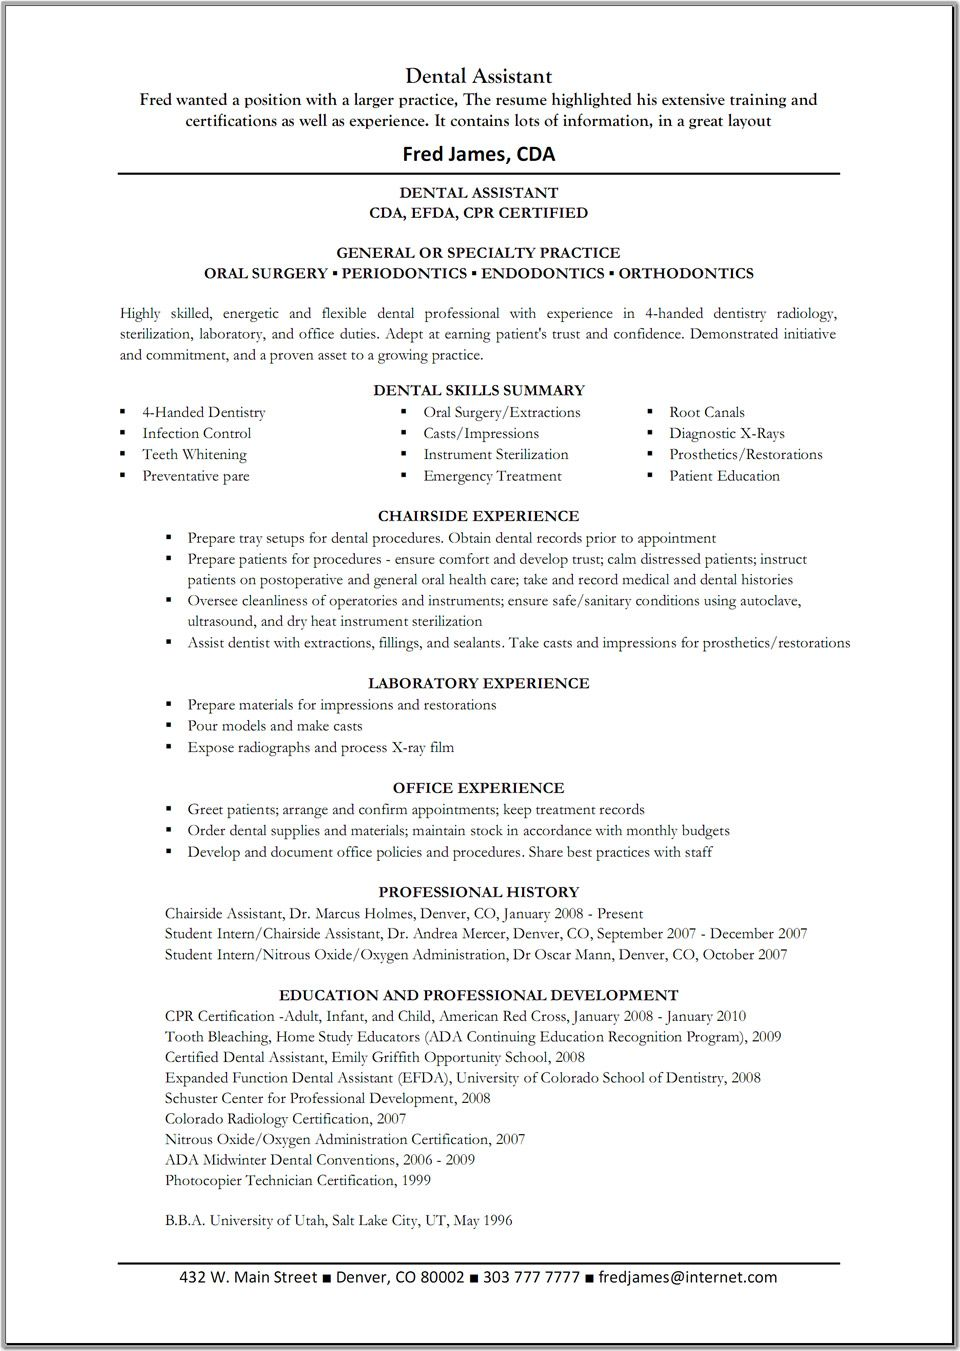 Legal Assistant Resume Glamorous Dental Assistant Resume Template  Great Resume Templates  Dental